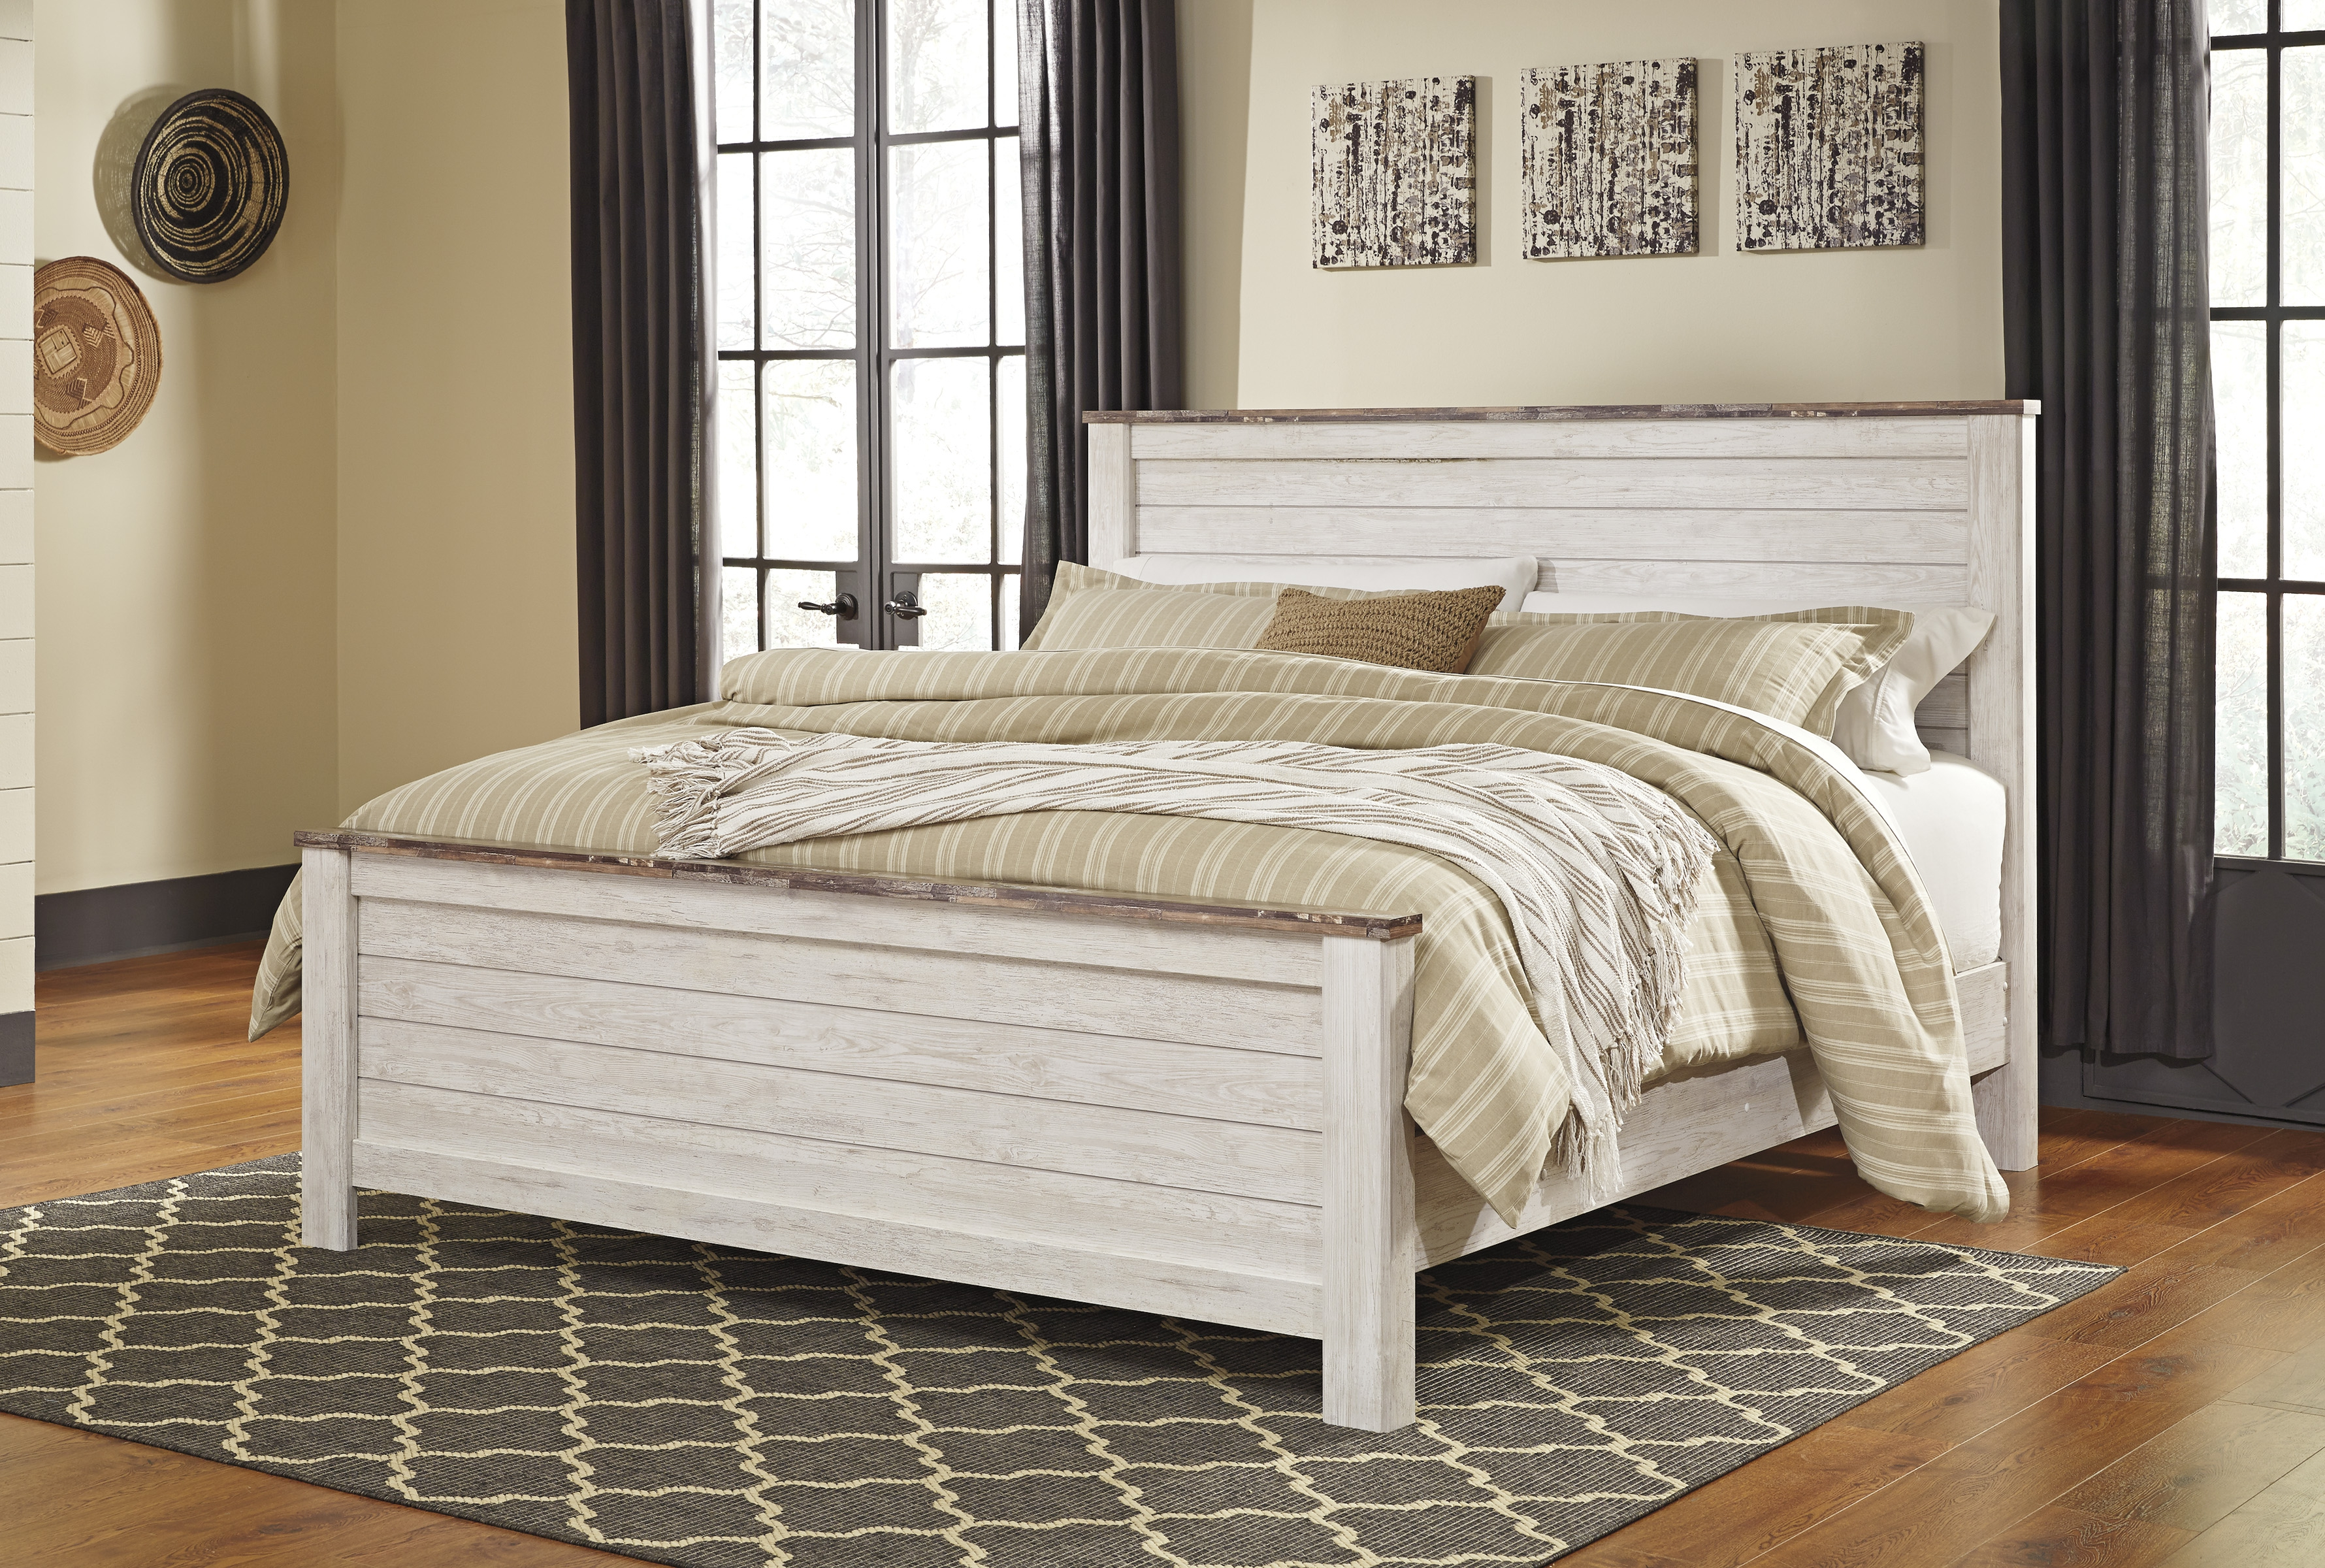 Ashley Furniture Willowton King Panel Bed The Classy Home